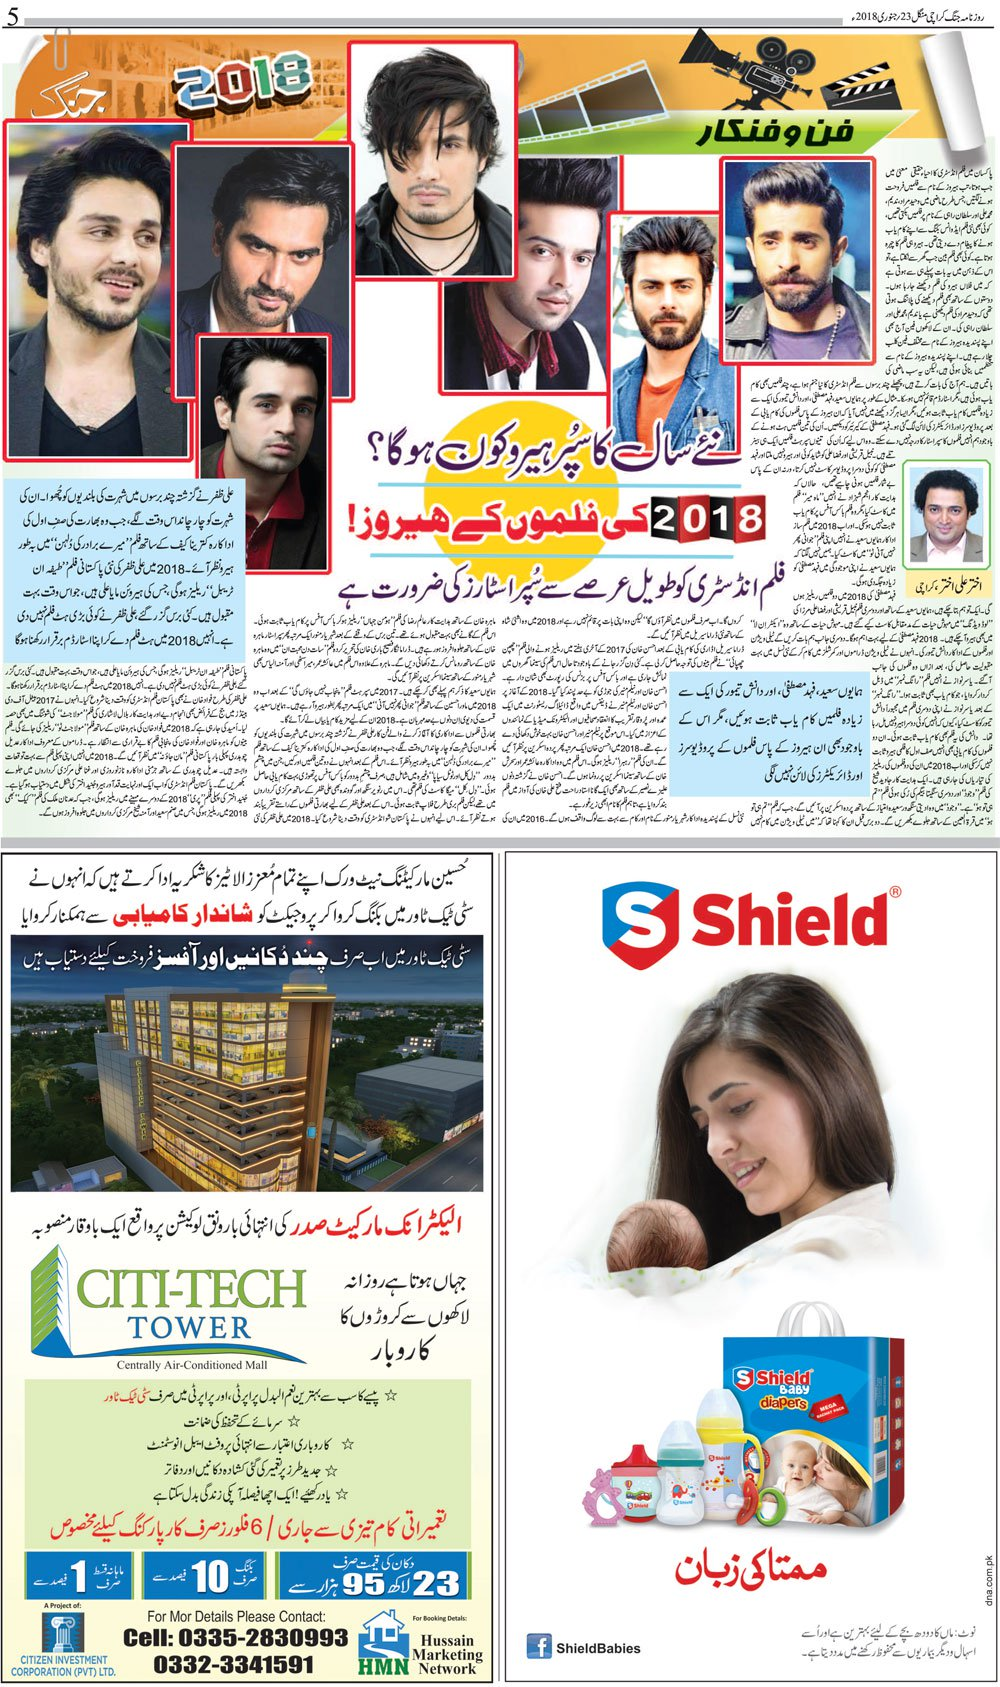 Junaid Akhter Featured in Daily Jang